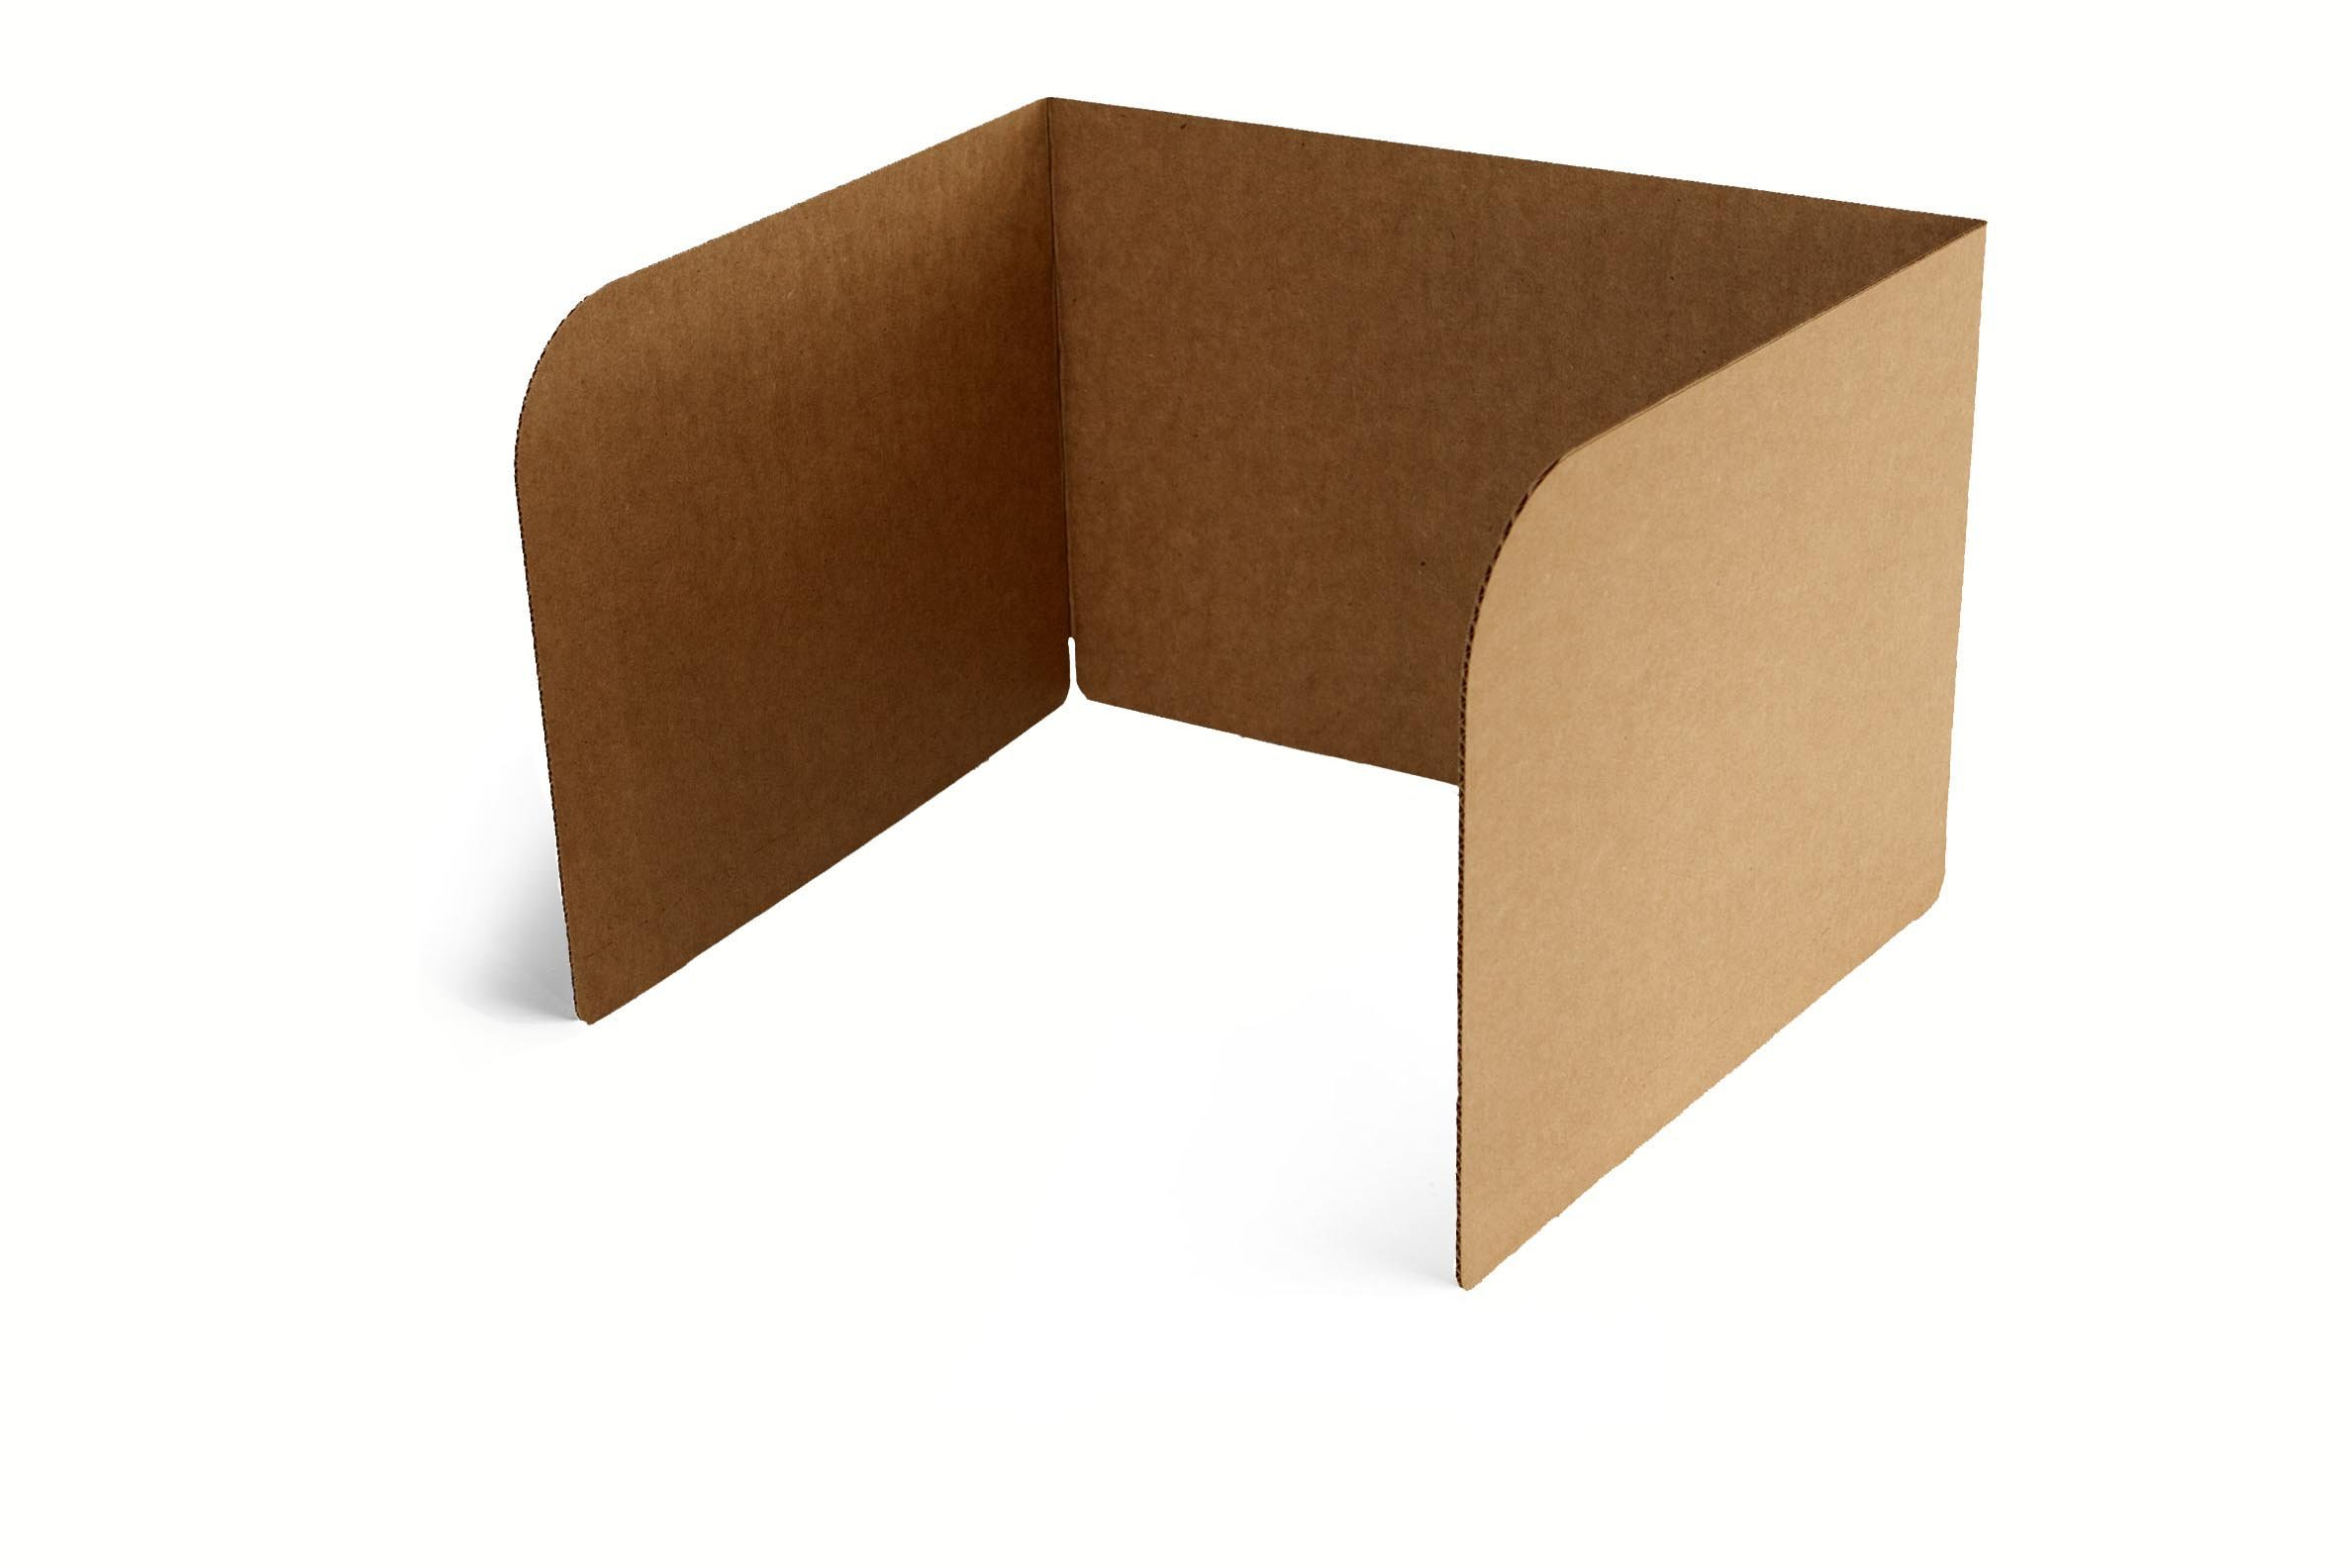 Classroom Products Privacy Shield 13 Inch Tall - Kraft - (Pack of 30)